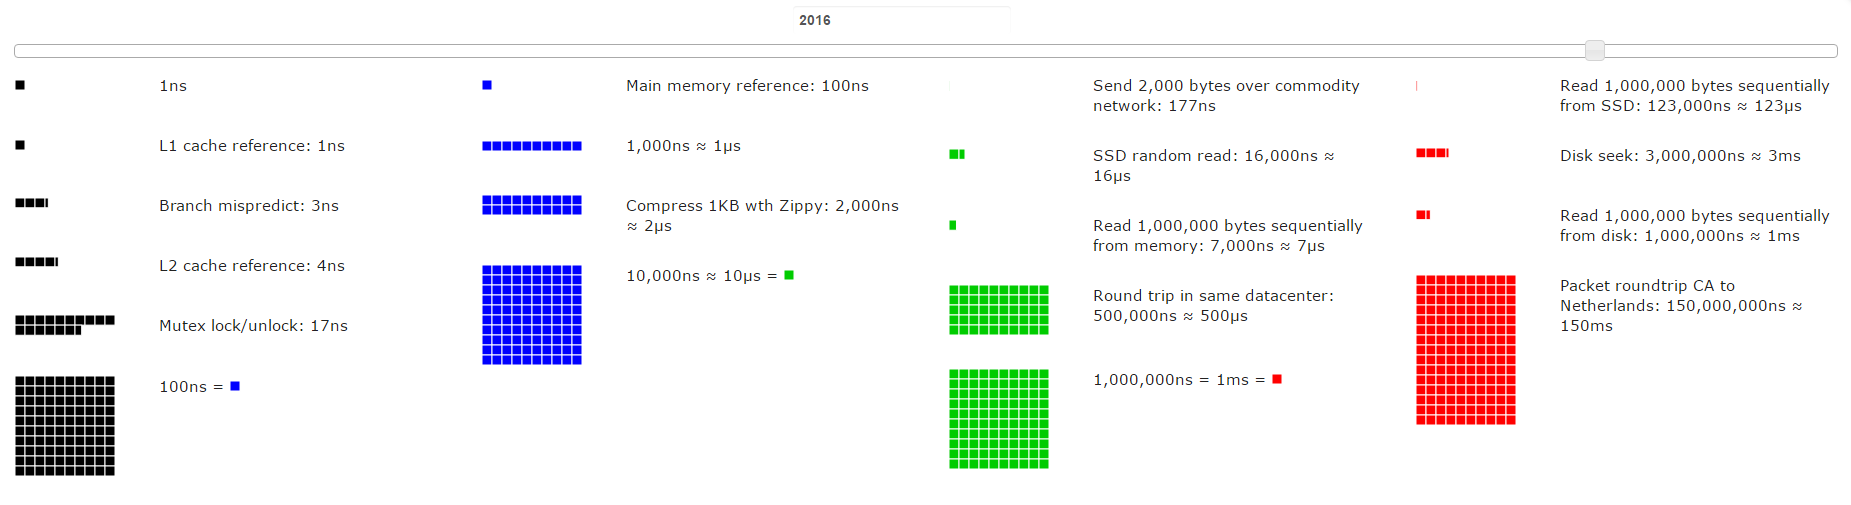 Latency Numbers Every Programmer Should Know 2016